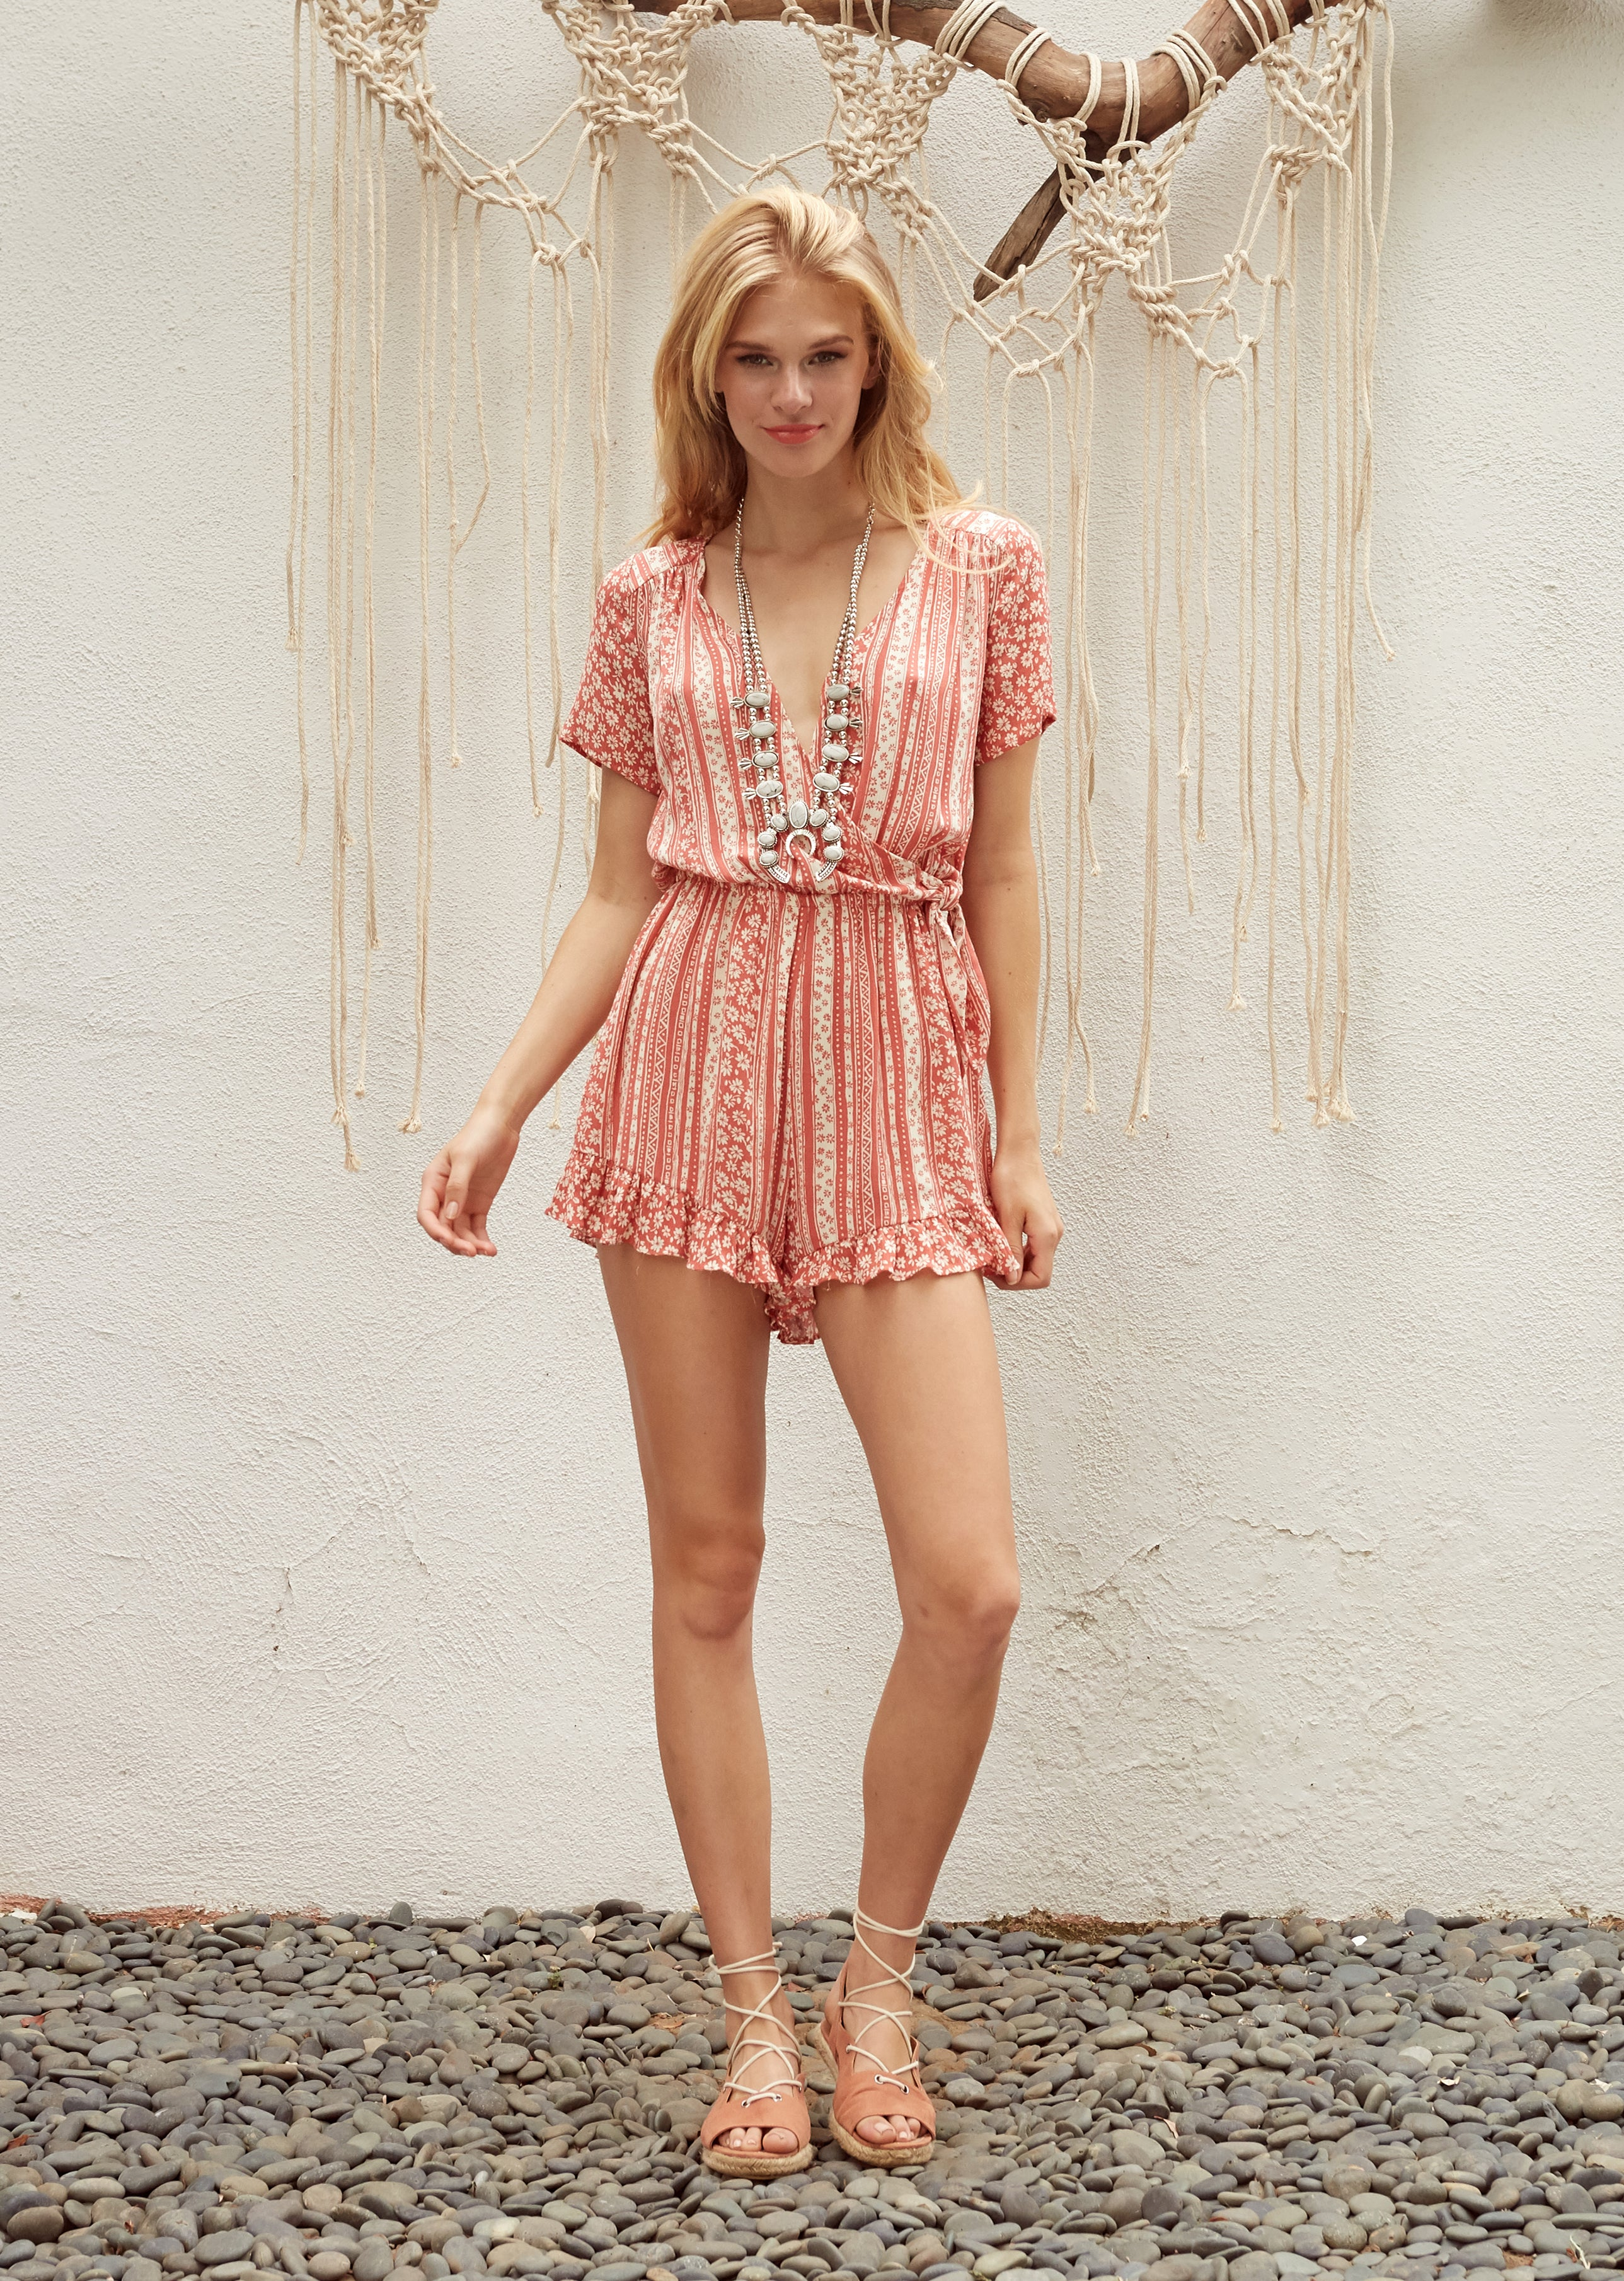 Suns Out Romper